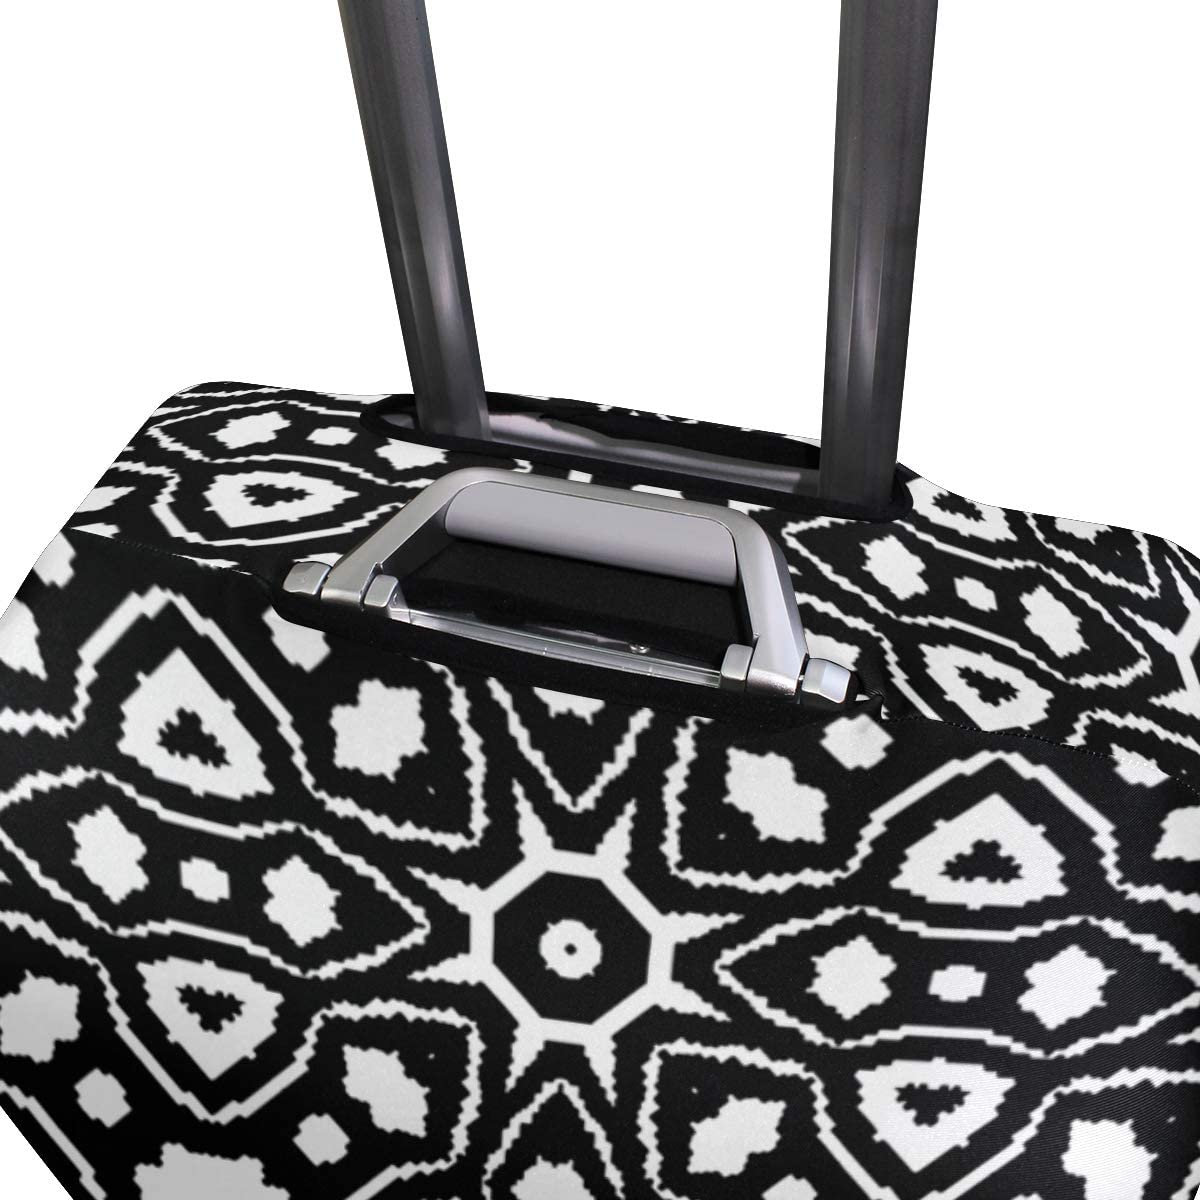 Nanmma Cute 3D Geometric Pattern Luggage Protector Travel Luggage Cover Trolley Case Protective Cover Fits 18-32 Inch